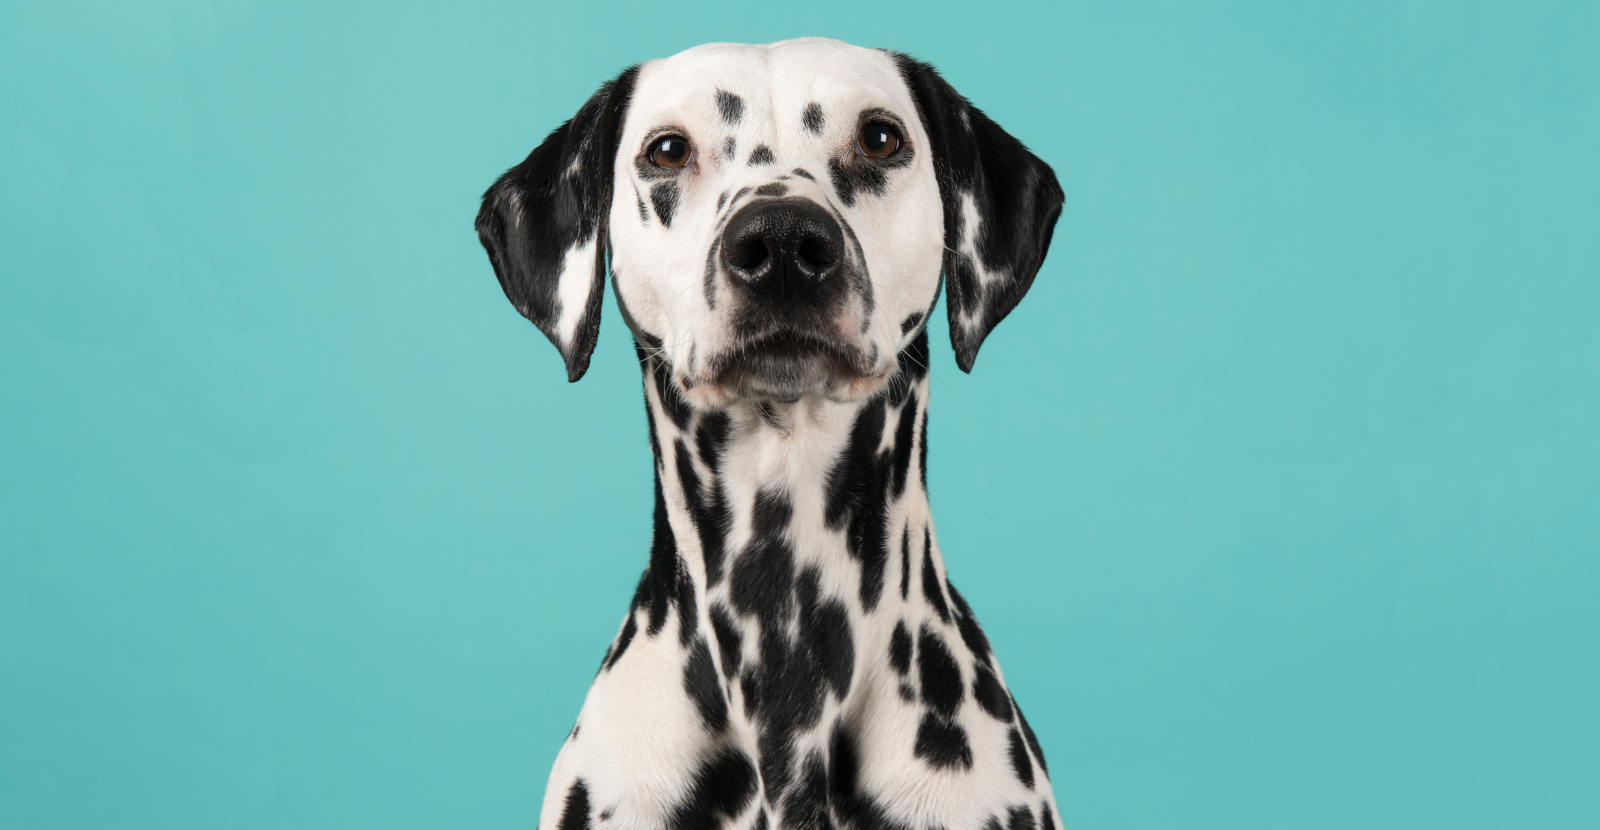 Dalmatians are Smart, Agile & Outgoing Fire Dogs